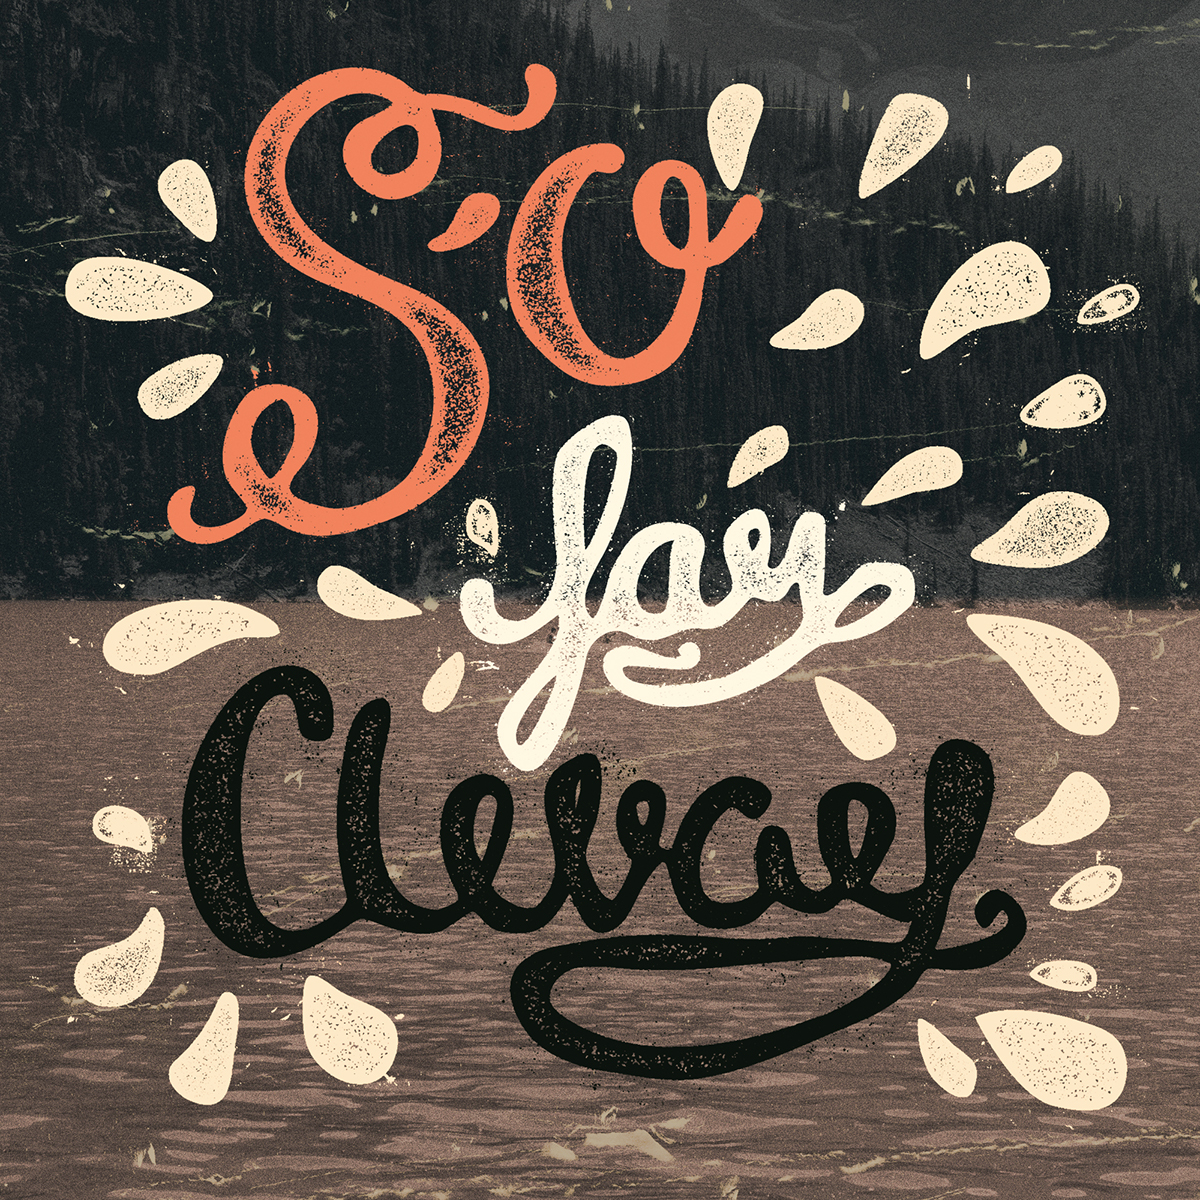 lettering speckles adobe illustrator graphic styles actions textures ink grain vintage Retro inked text effects effects handmade handprinted press